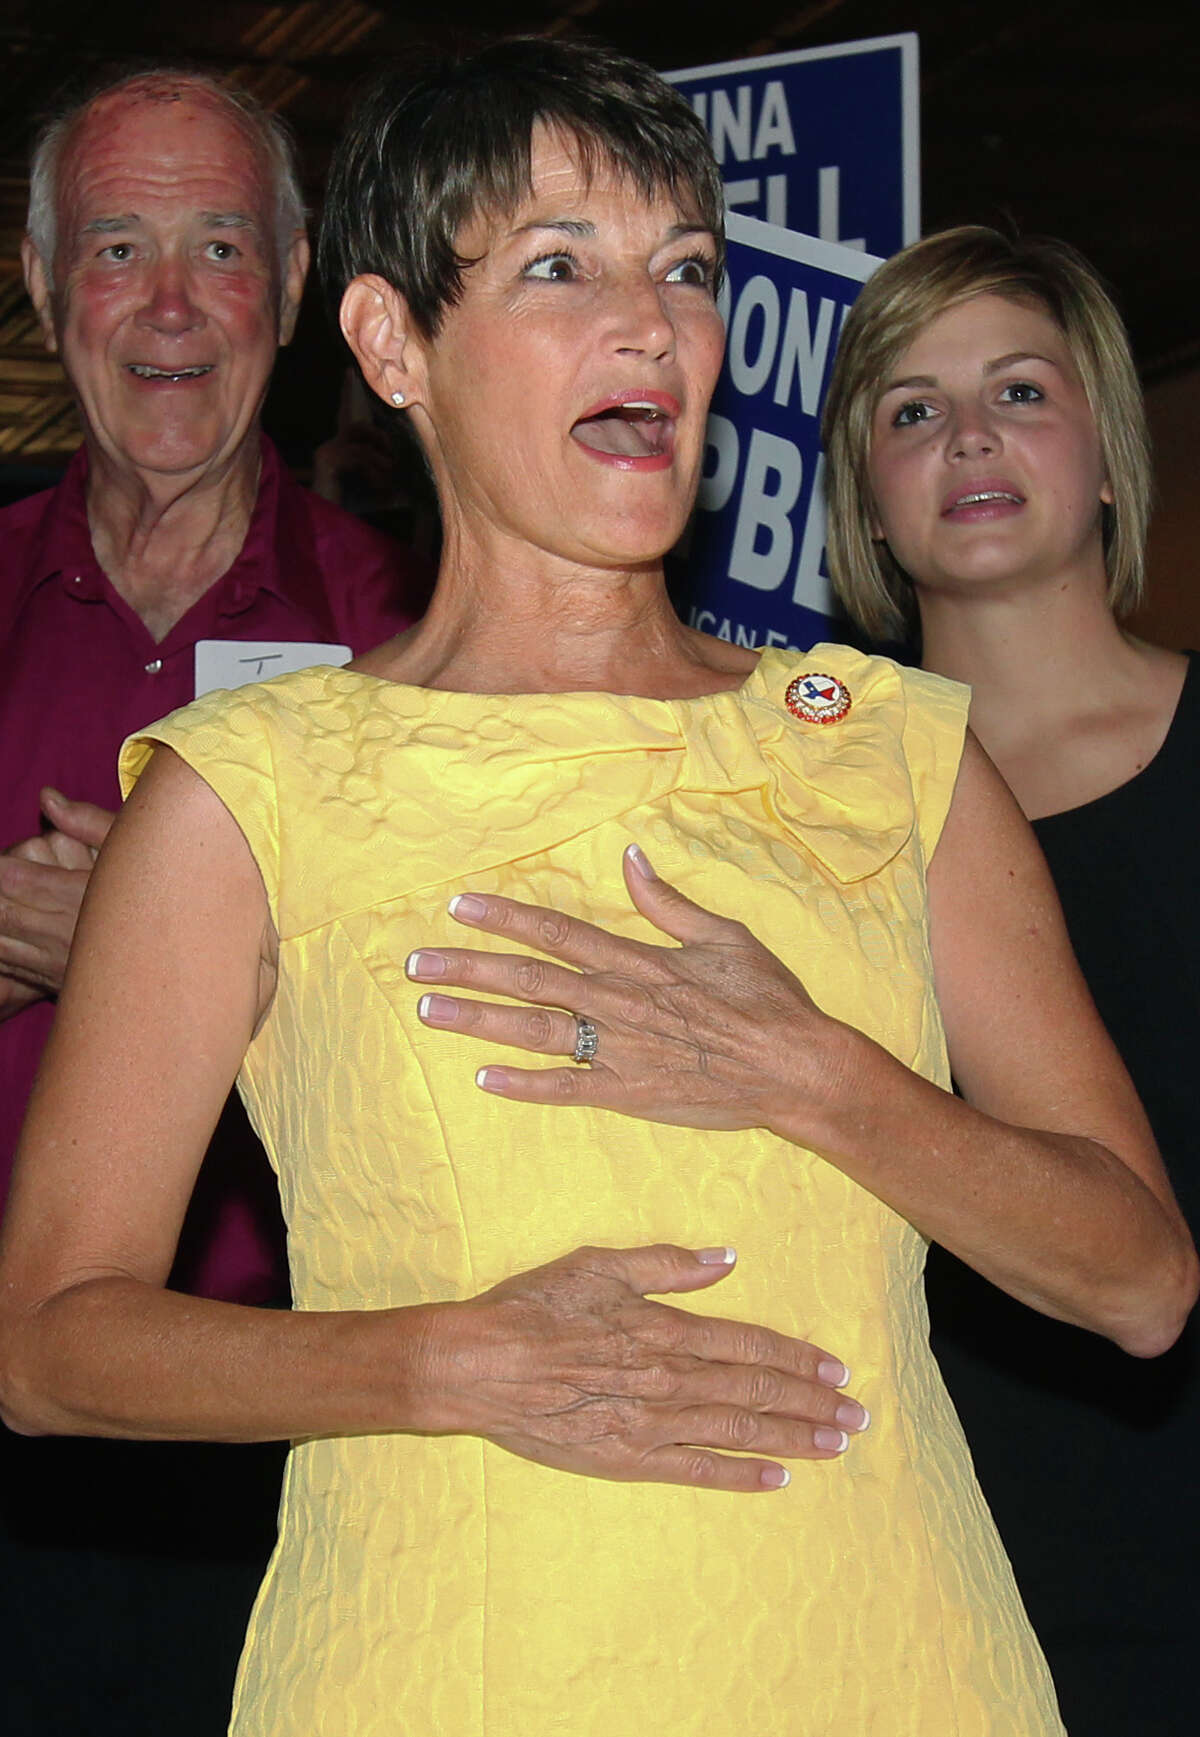 Donna Campbell reacts to an election return posting that shows her with a large lead in her runoff with Senator Jeff Wentworth at the Seekatz Opera House in New Braunfels on July 31, 2012.